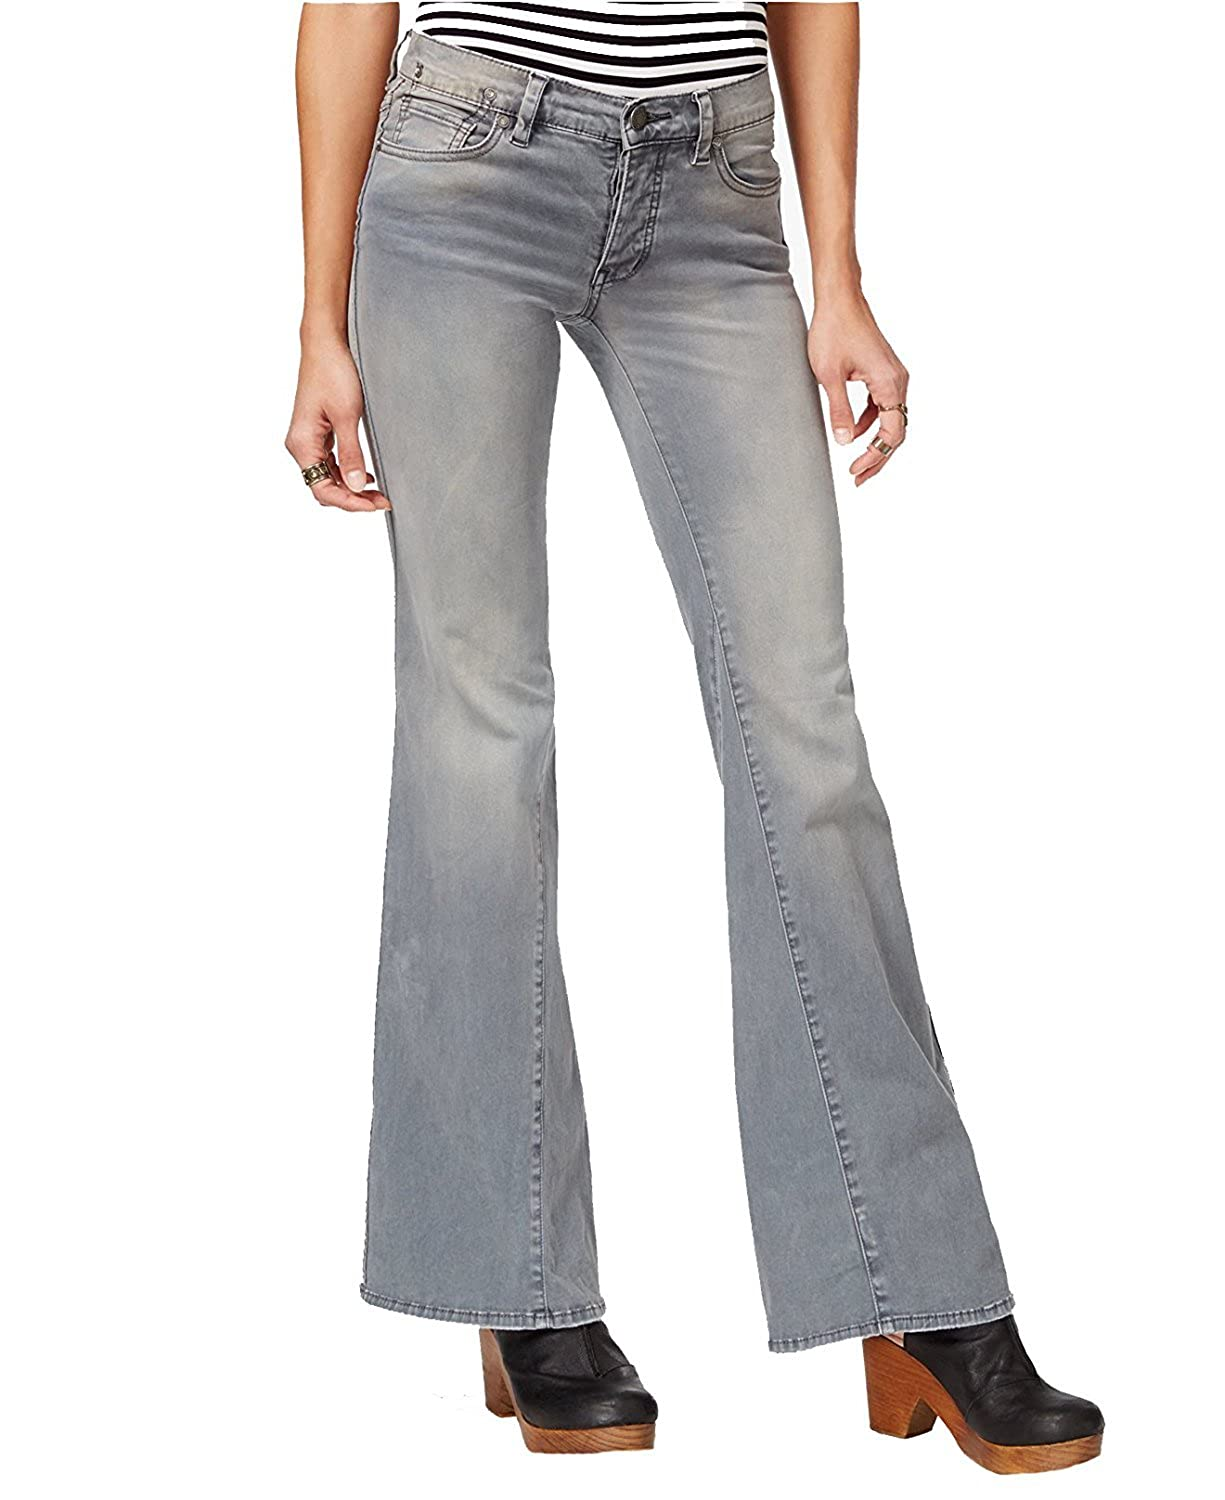 Free People Women's Gold Coast Flared Jeans